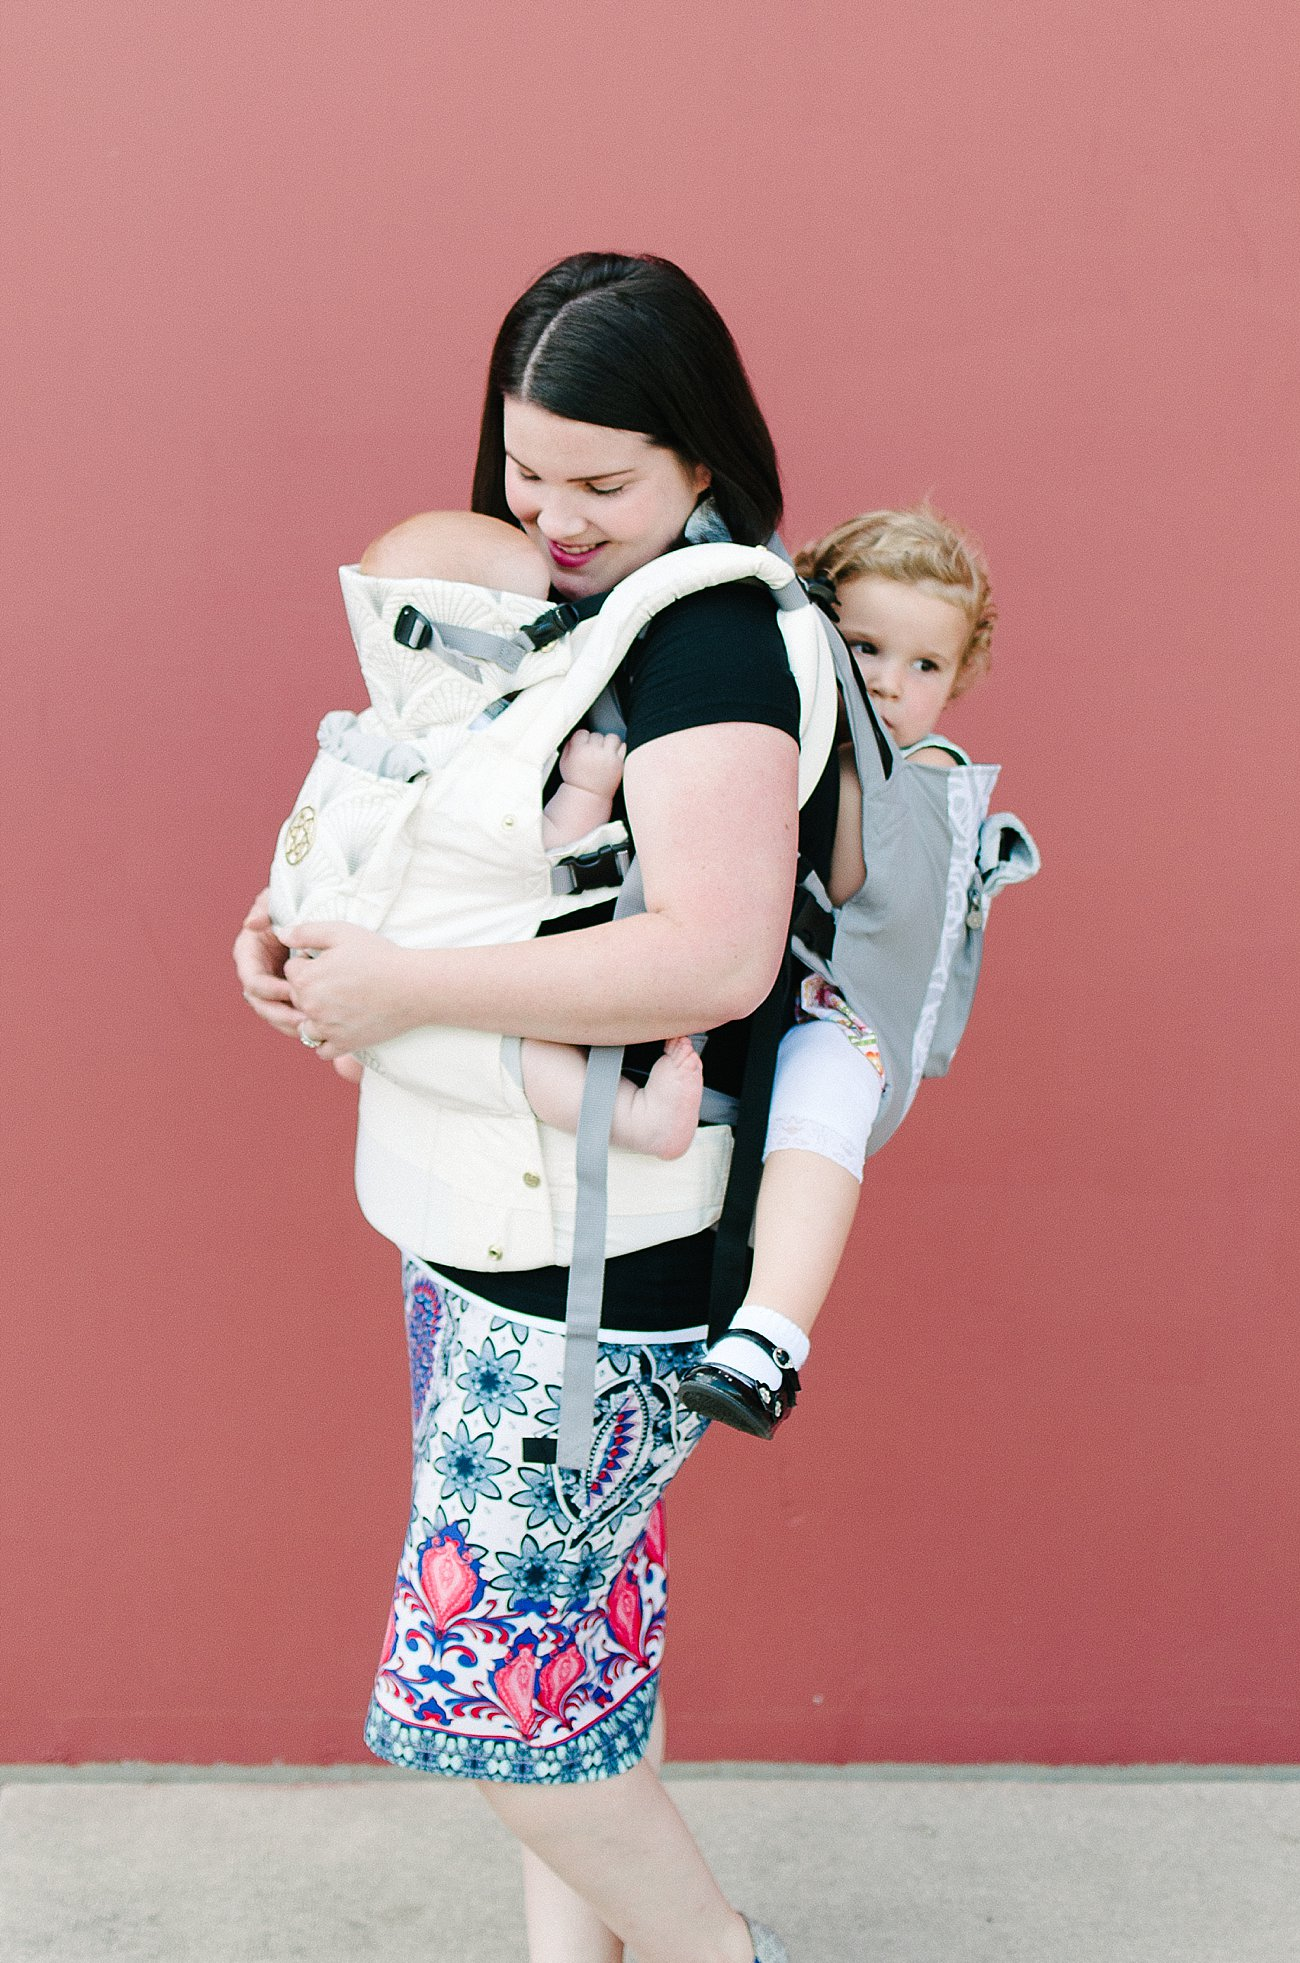 with Lillebaby Complete & CarryOn Baby Carriers #babywearing #tandemwearing #toddlerwearing (6)